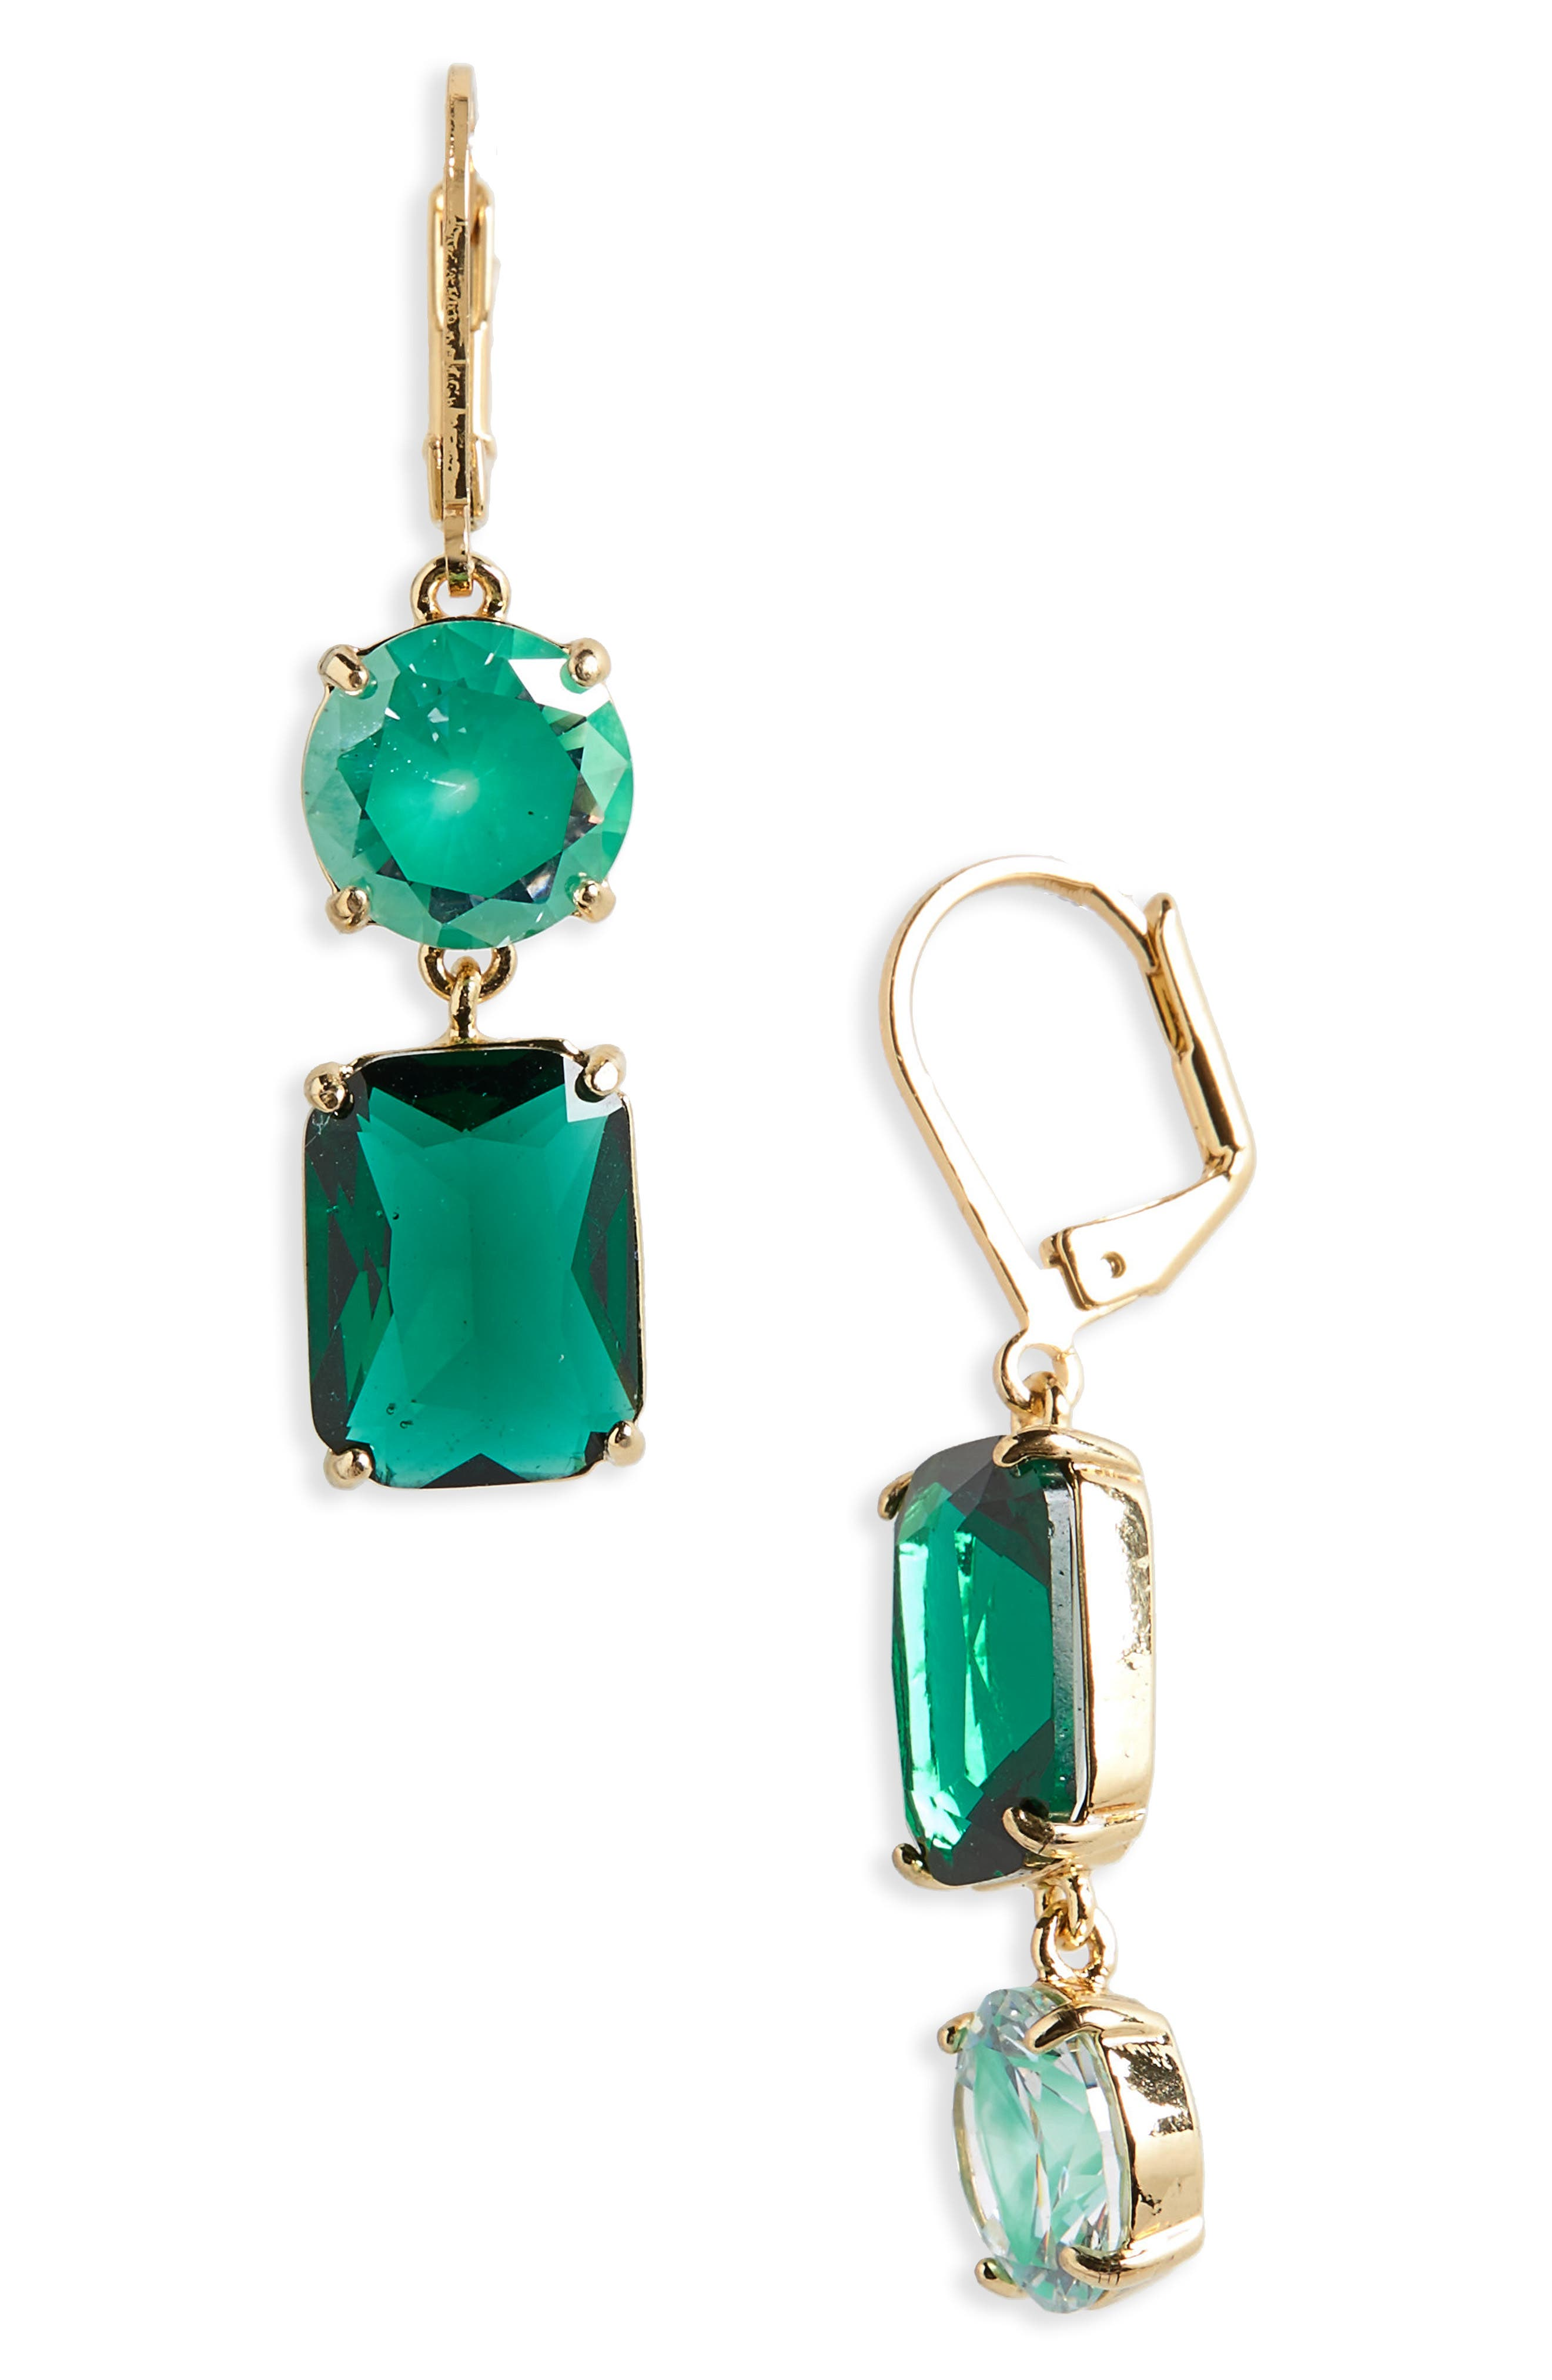 KATE SPADE NEW YORK kate spade shine on mismatched drop earrings, Main, color, 300